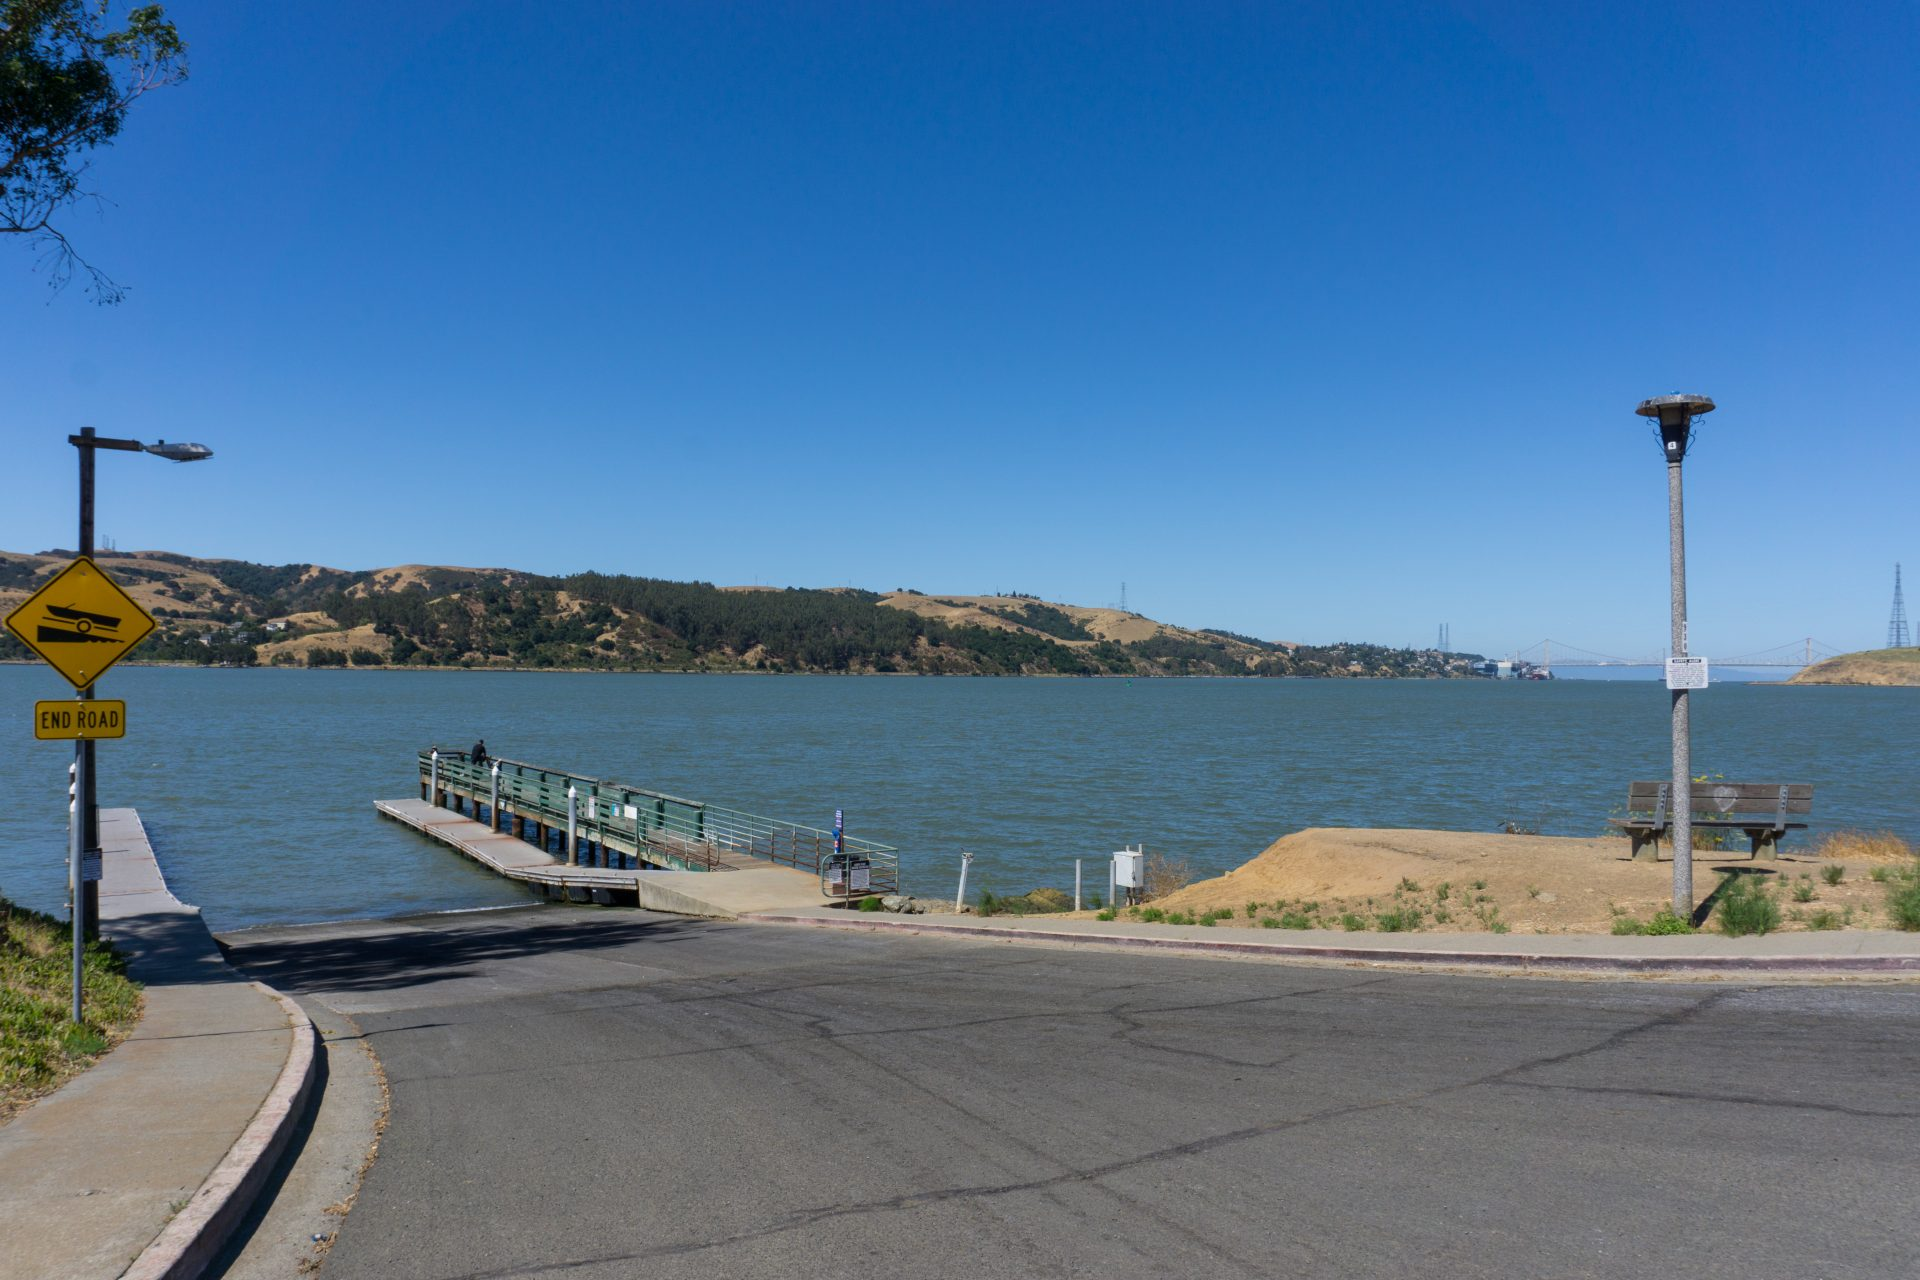 boat ramp descending into water, blue water in middle, green and bbrown hills beyond